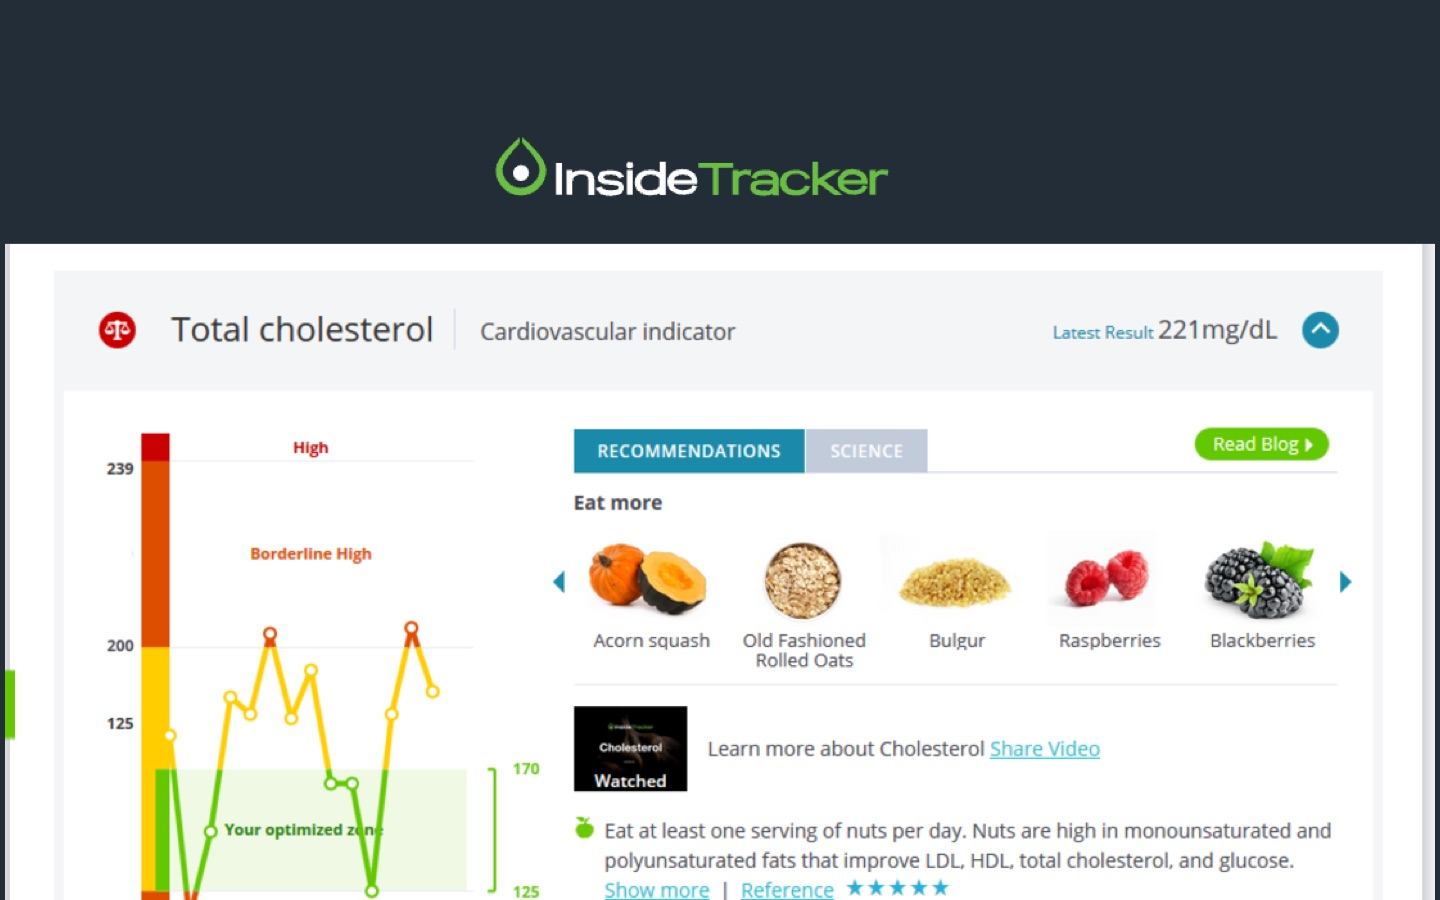 InsideTracker featured